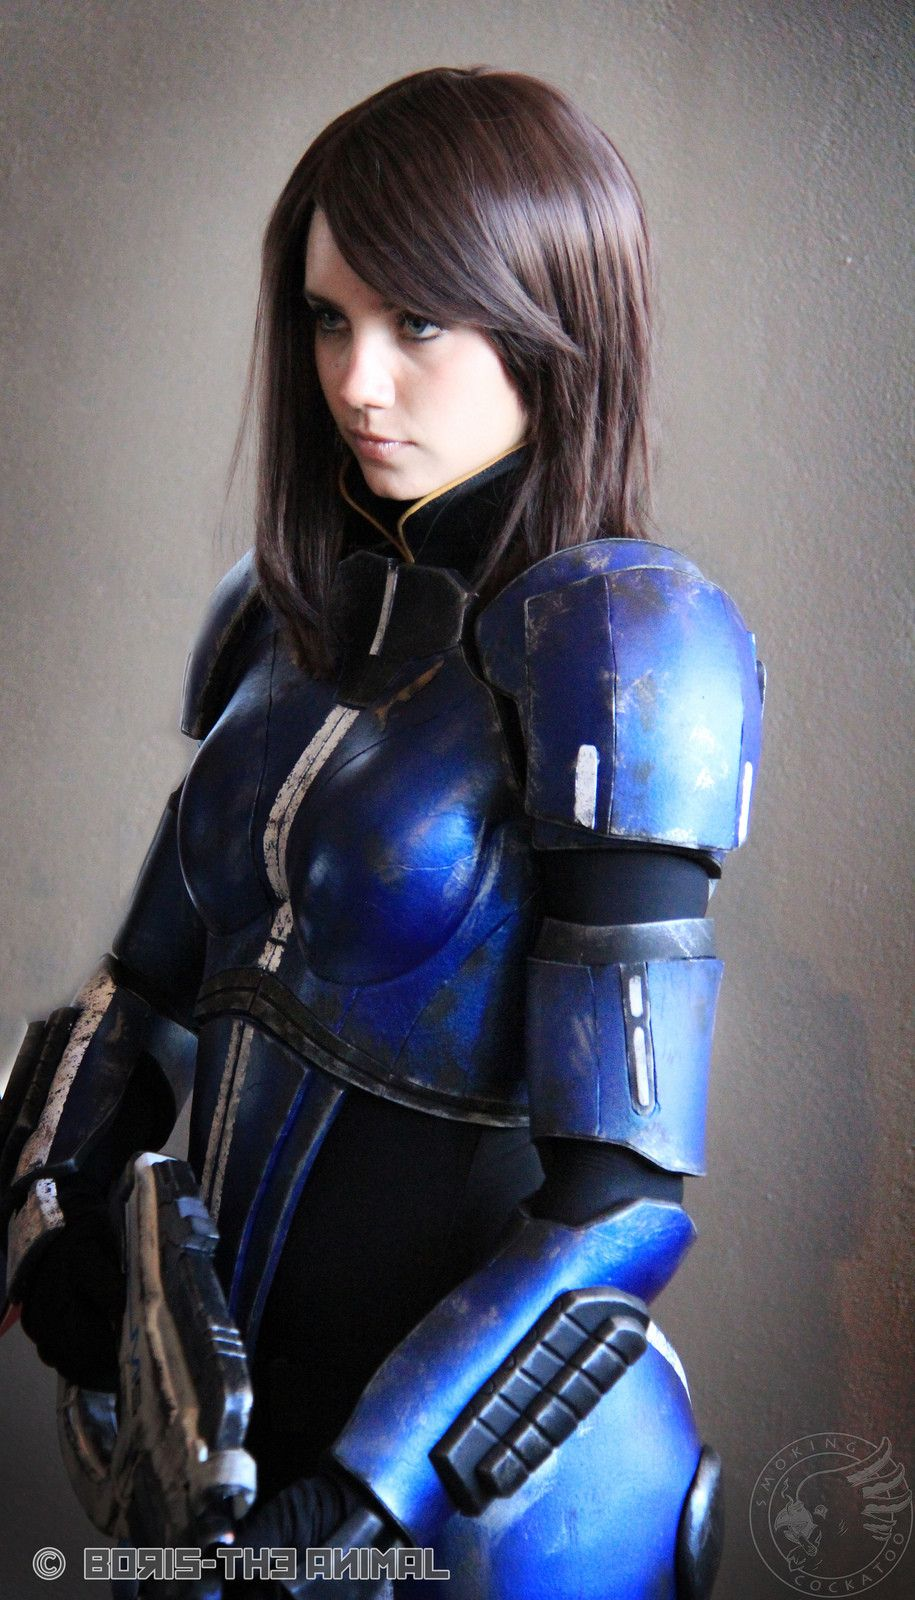 Ashley Williams Actress Nude Good ashley- mass effect cosplay   cosplay, cosplay girls and gaming